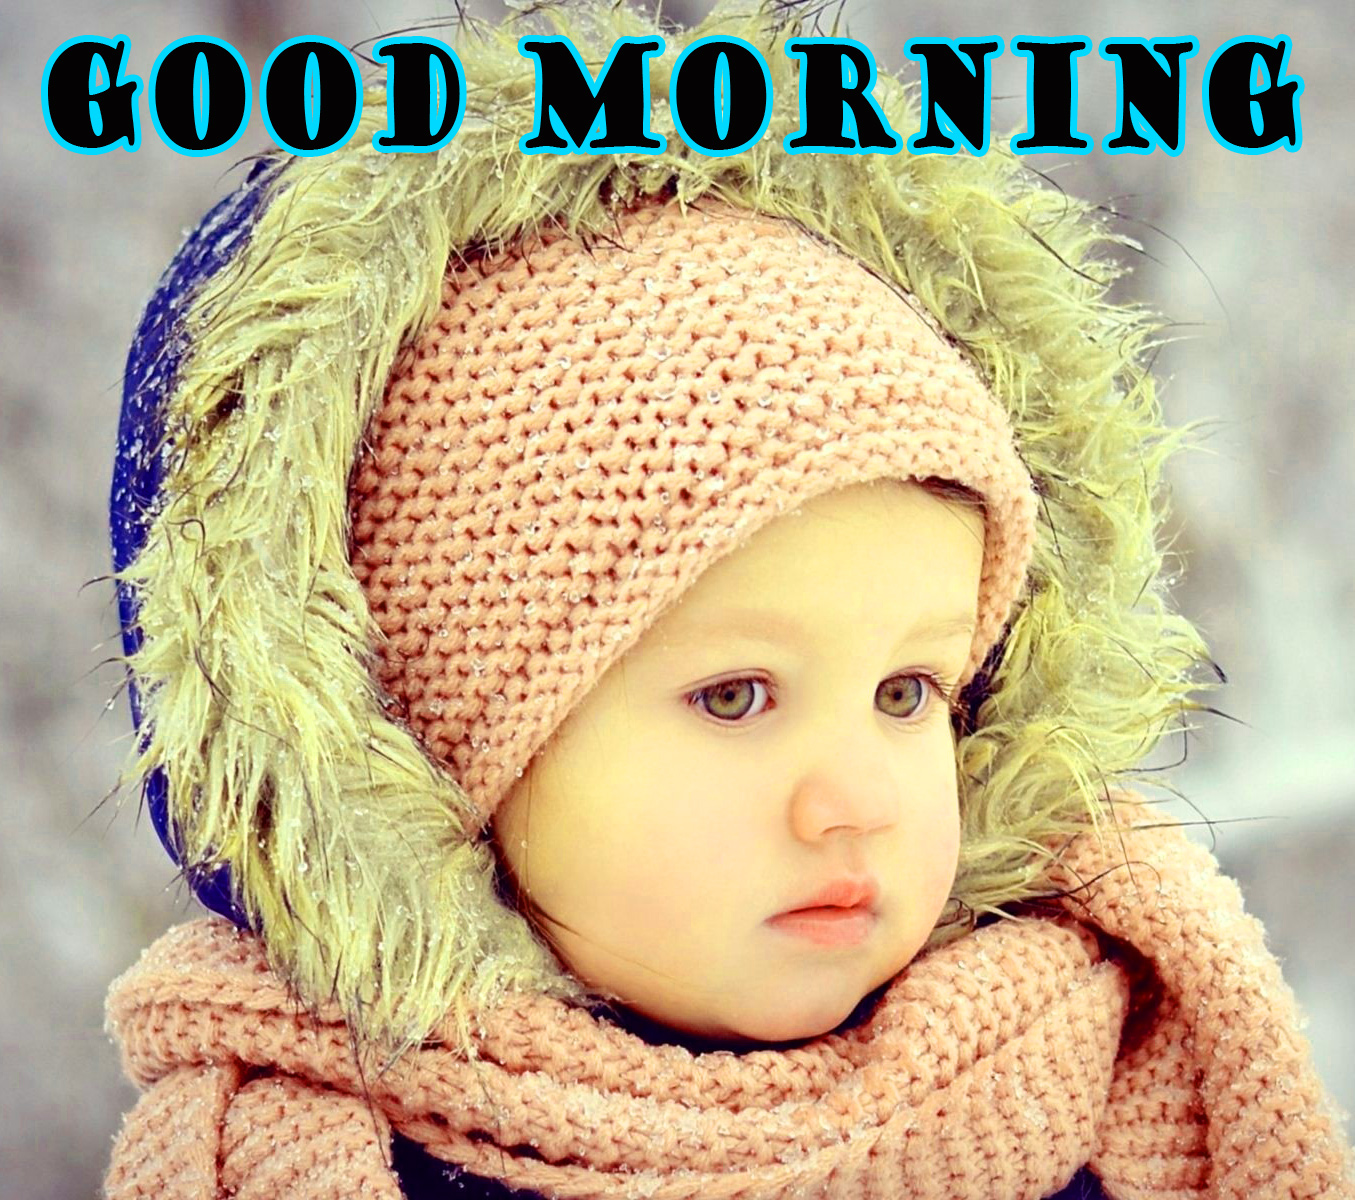 गुड मॉर्निंग New Wonderful Good Morning Wallpaper Pictures Images HD